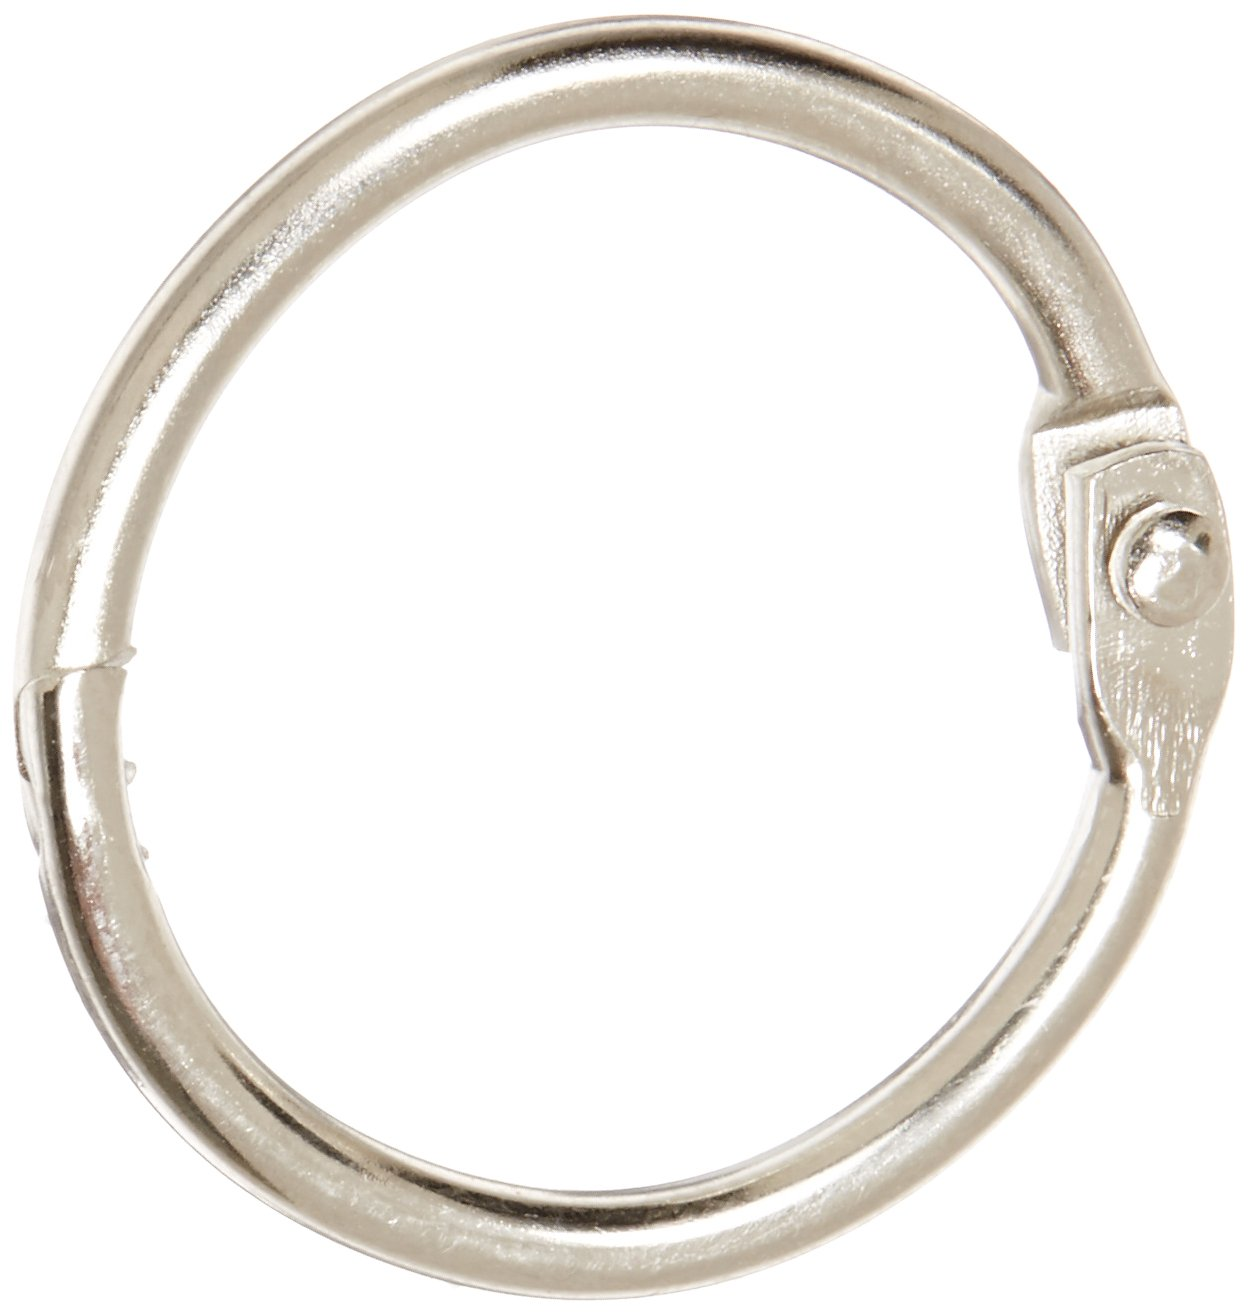 School Smart 36975 Nickel Plated Loose Leaf Ring, 1'' Diameter (Pack of 100)